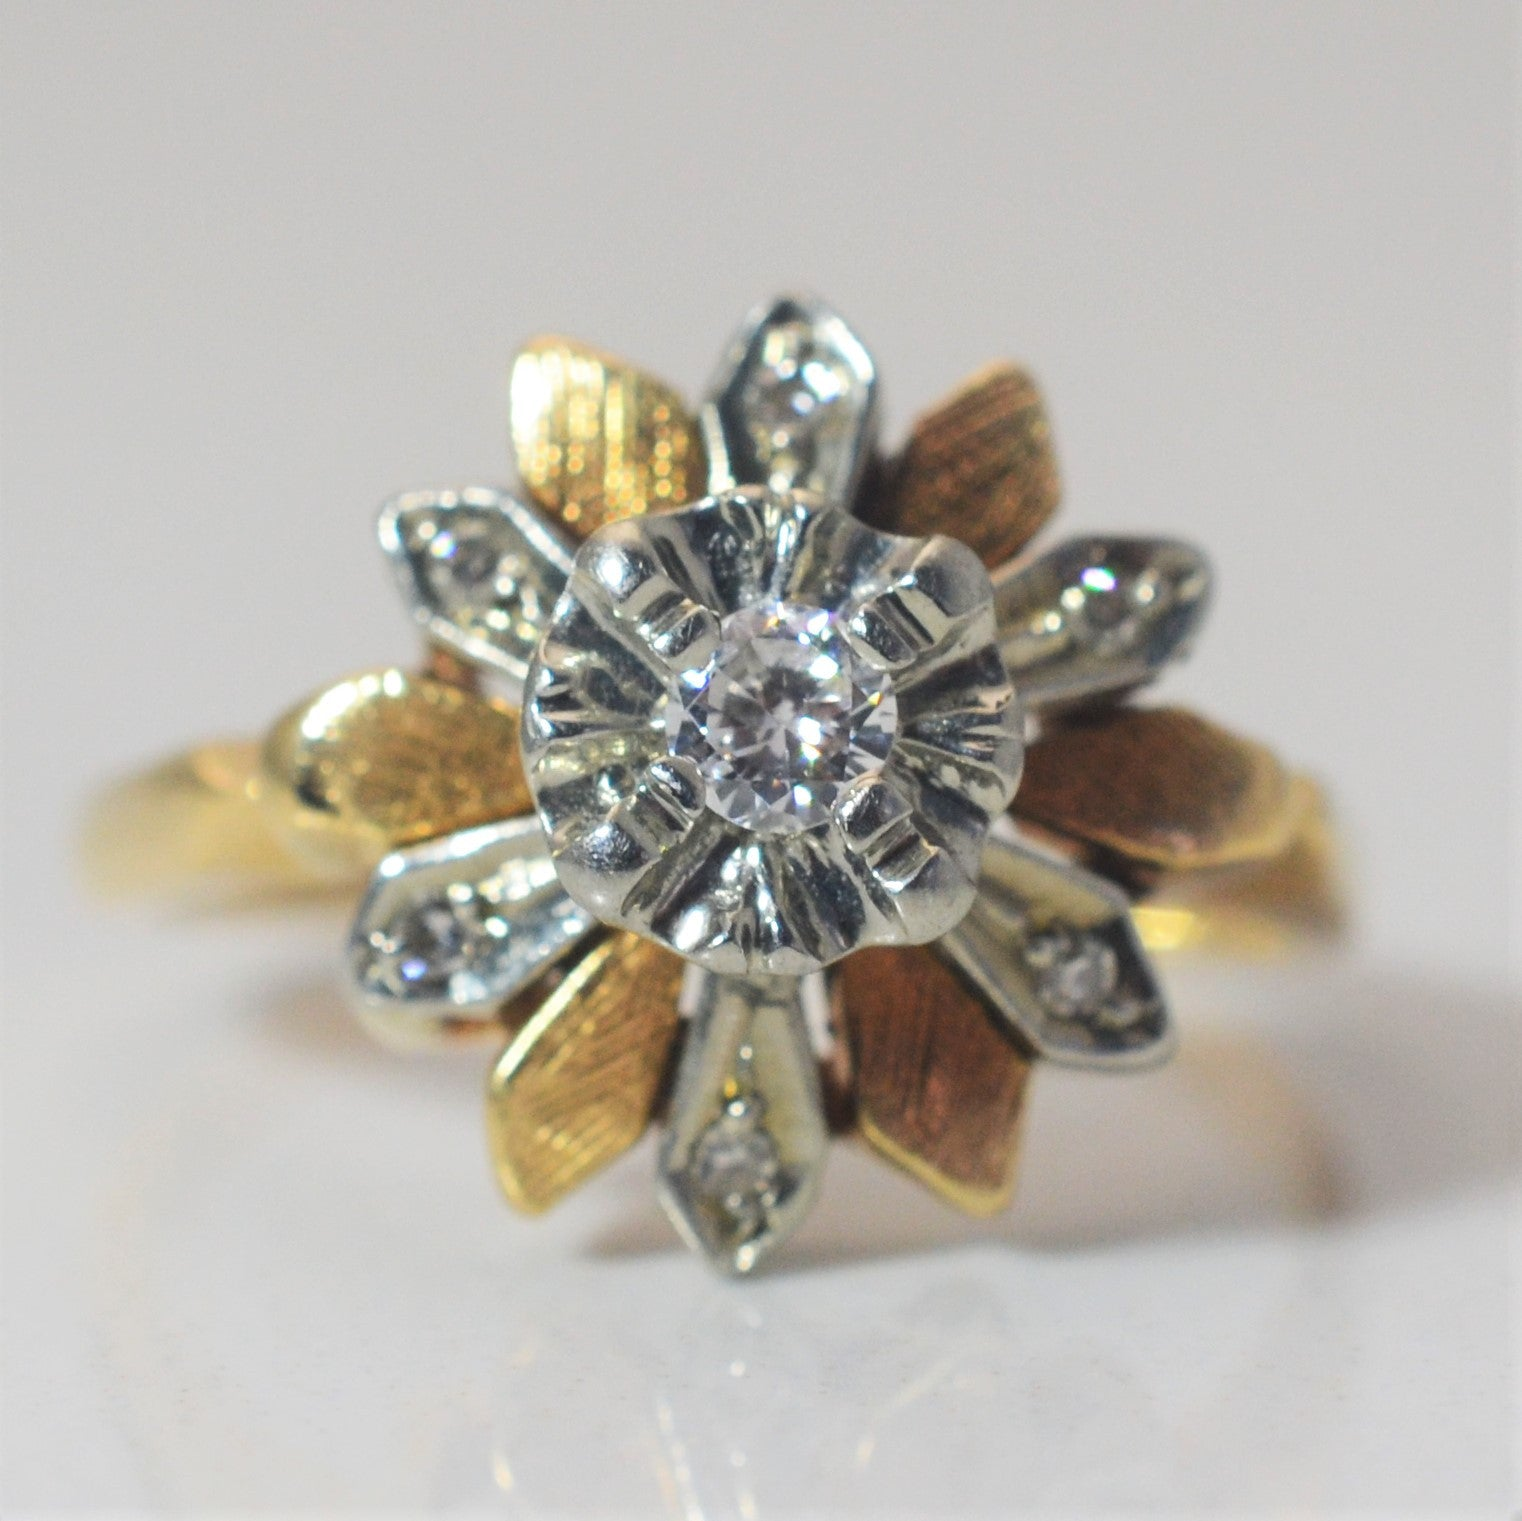 Vintage Two Tone Floral Cocktail Ring | 0.16 ctw, SZ 7 |